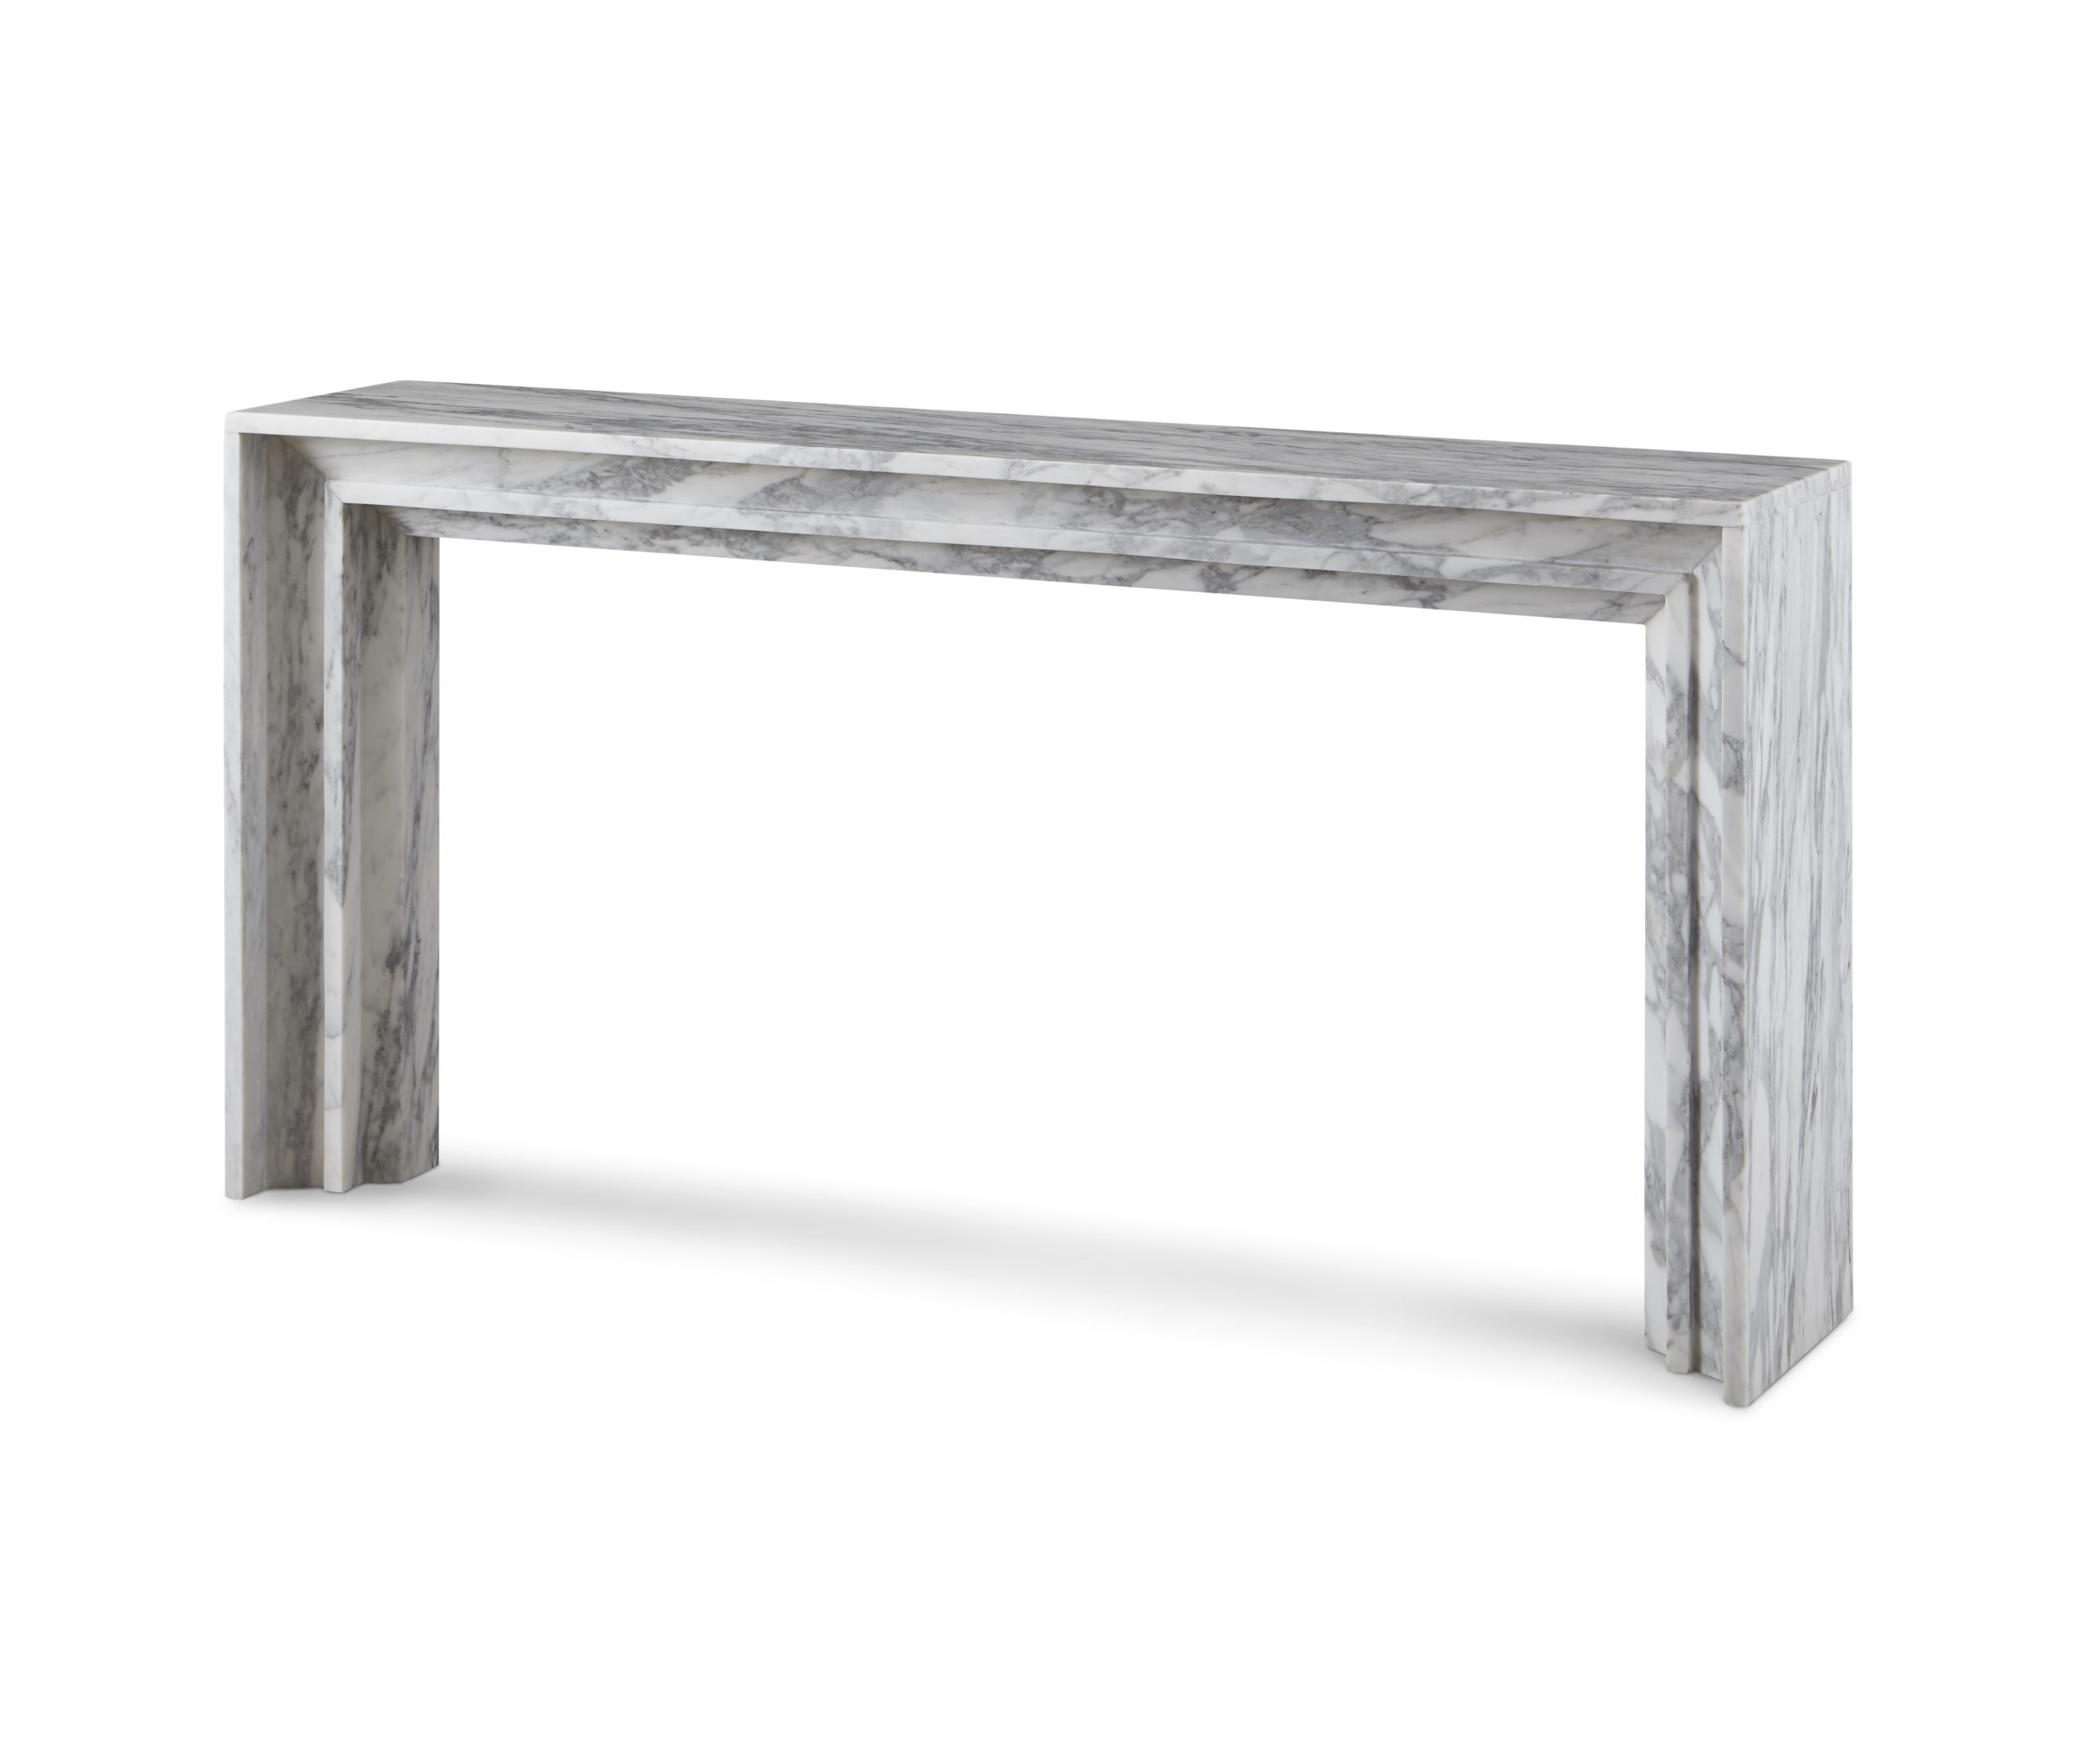 Baker_products_WNWN_angelo_console_BAA3063_FRONT_3QRT-scaled-2